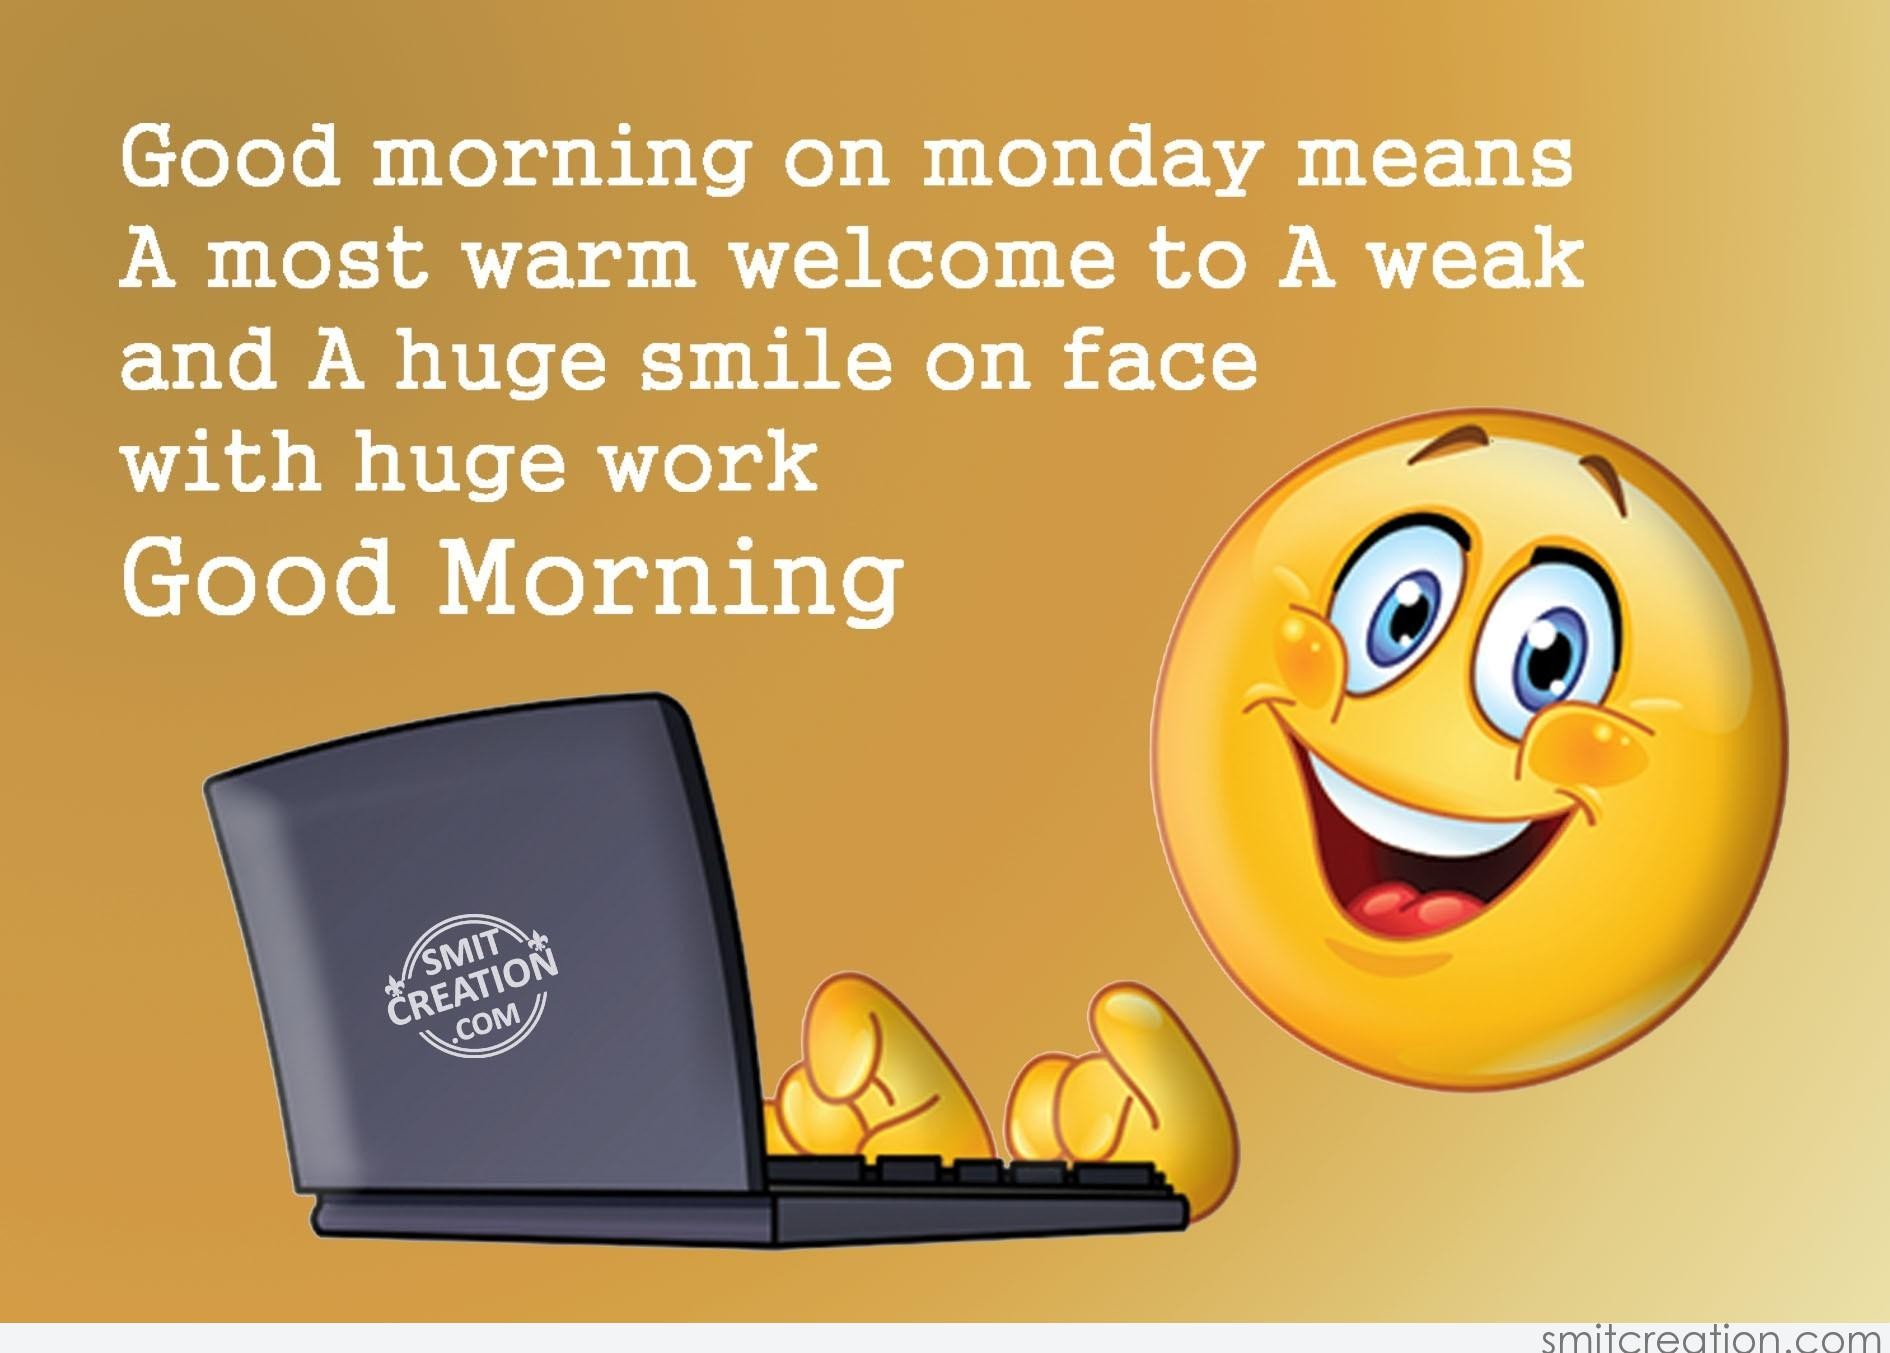 Monday pictures and graphics page 2 - Good morning monday images ...